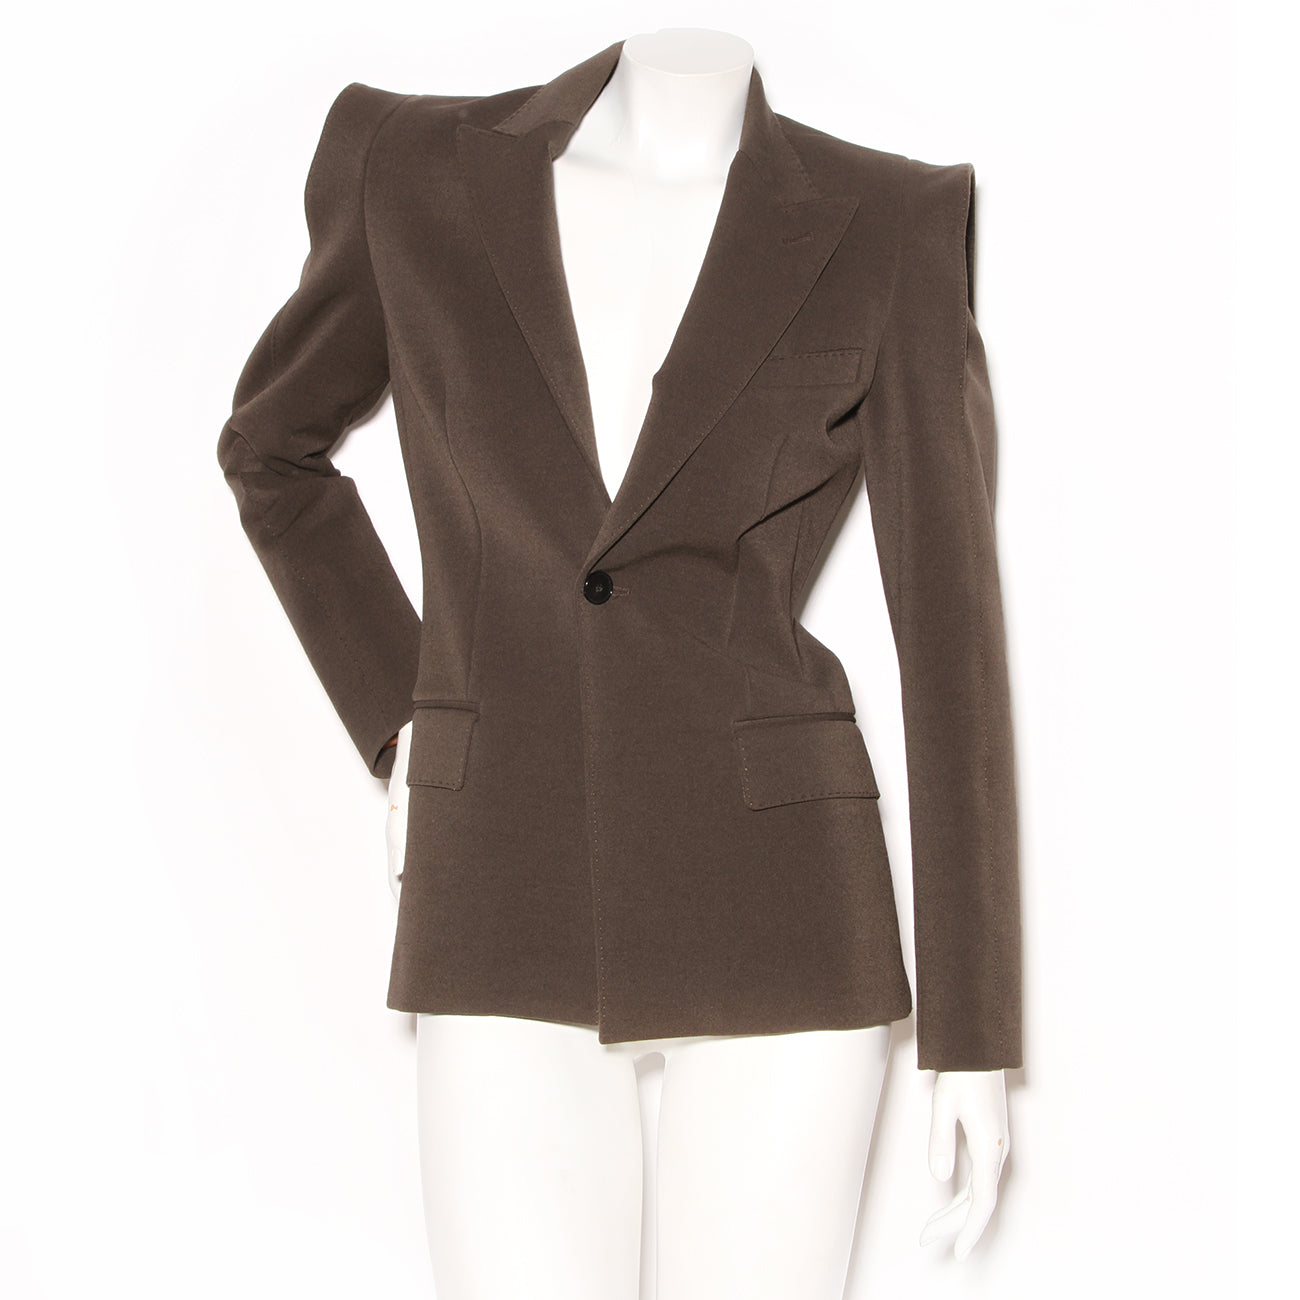 Jean Paul Gaultier Blazer with Structural Shoulder